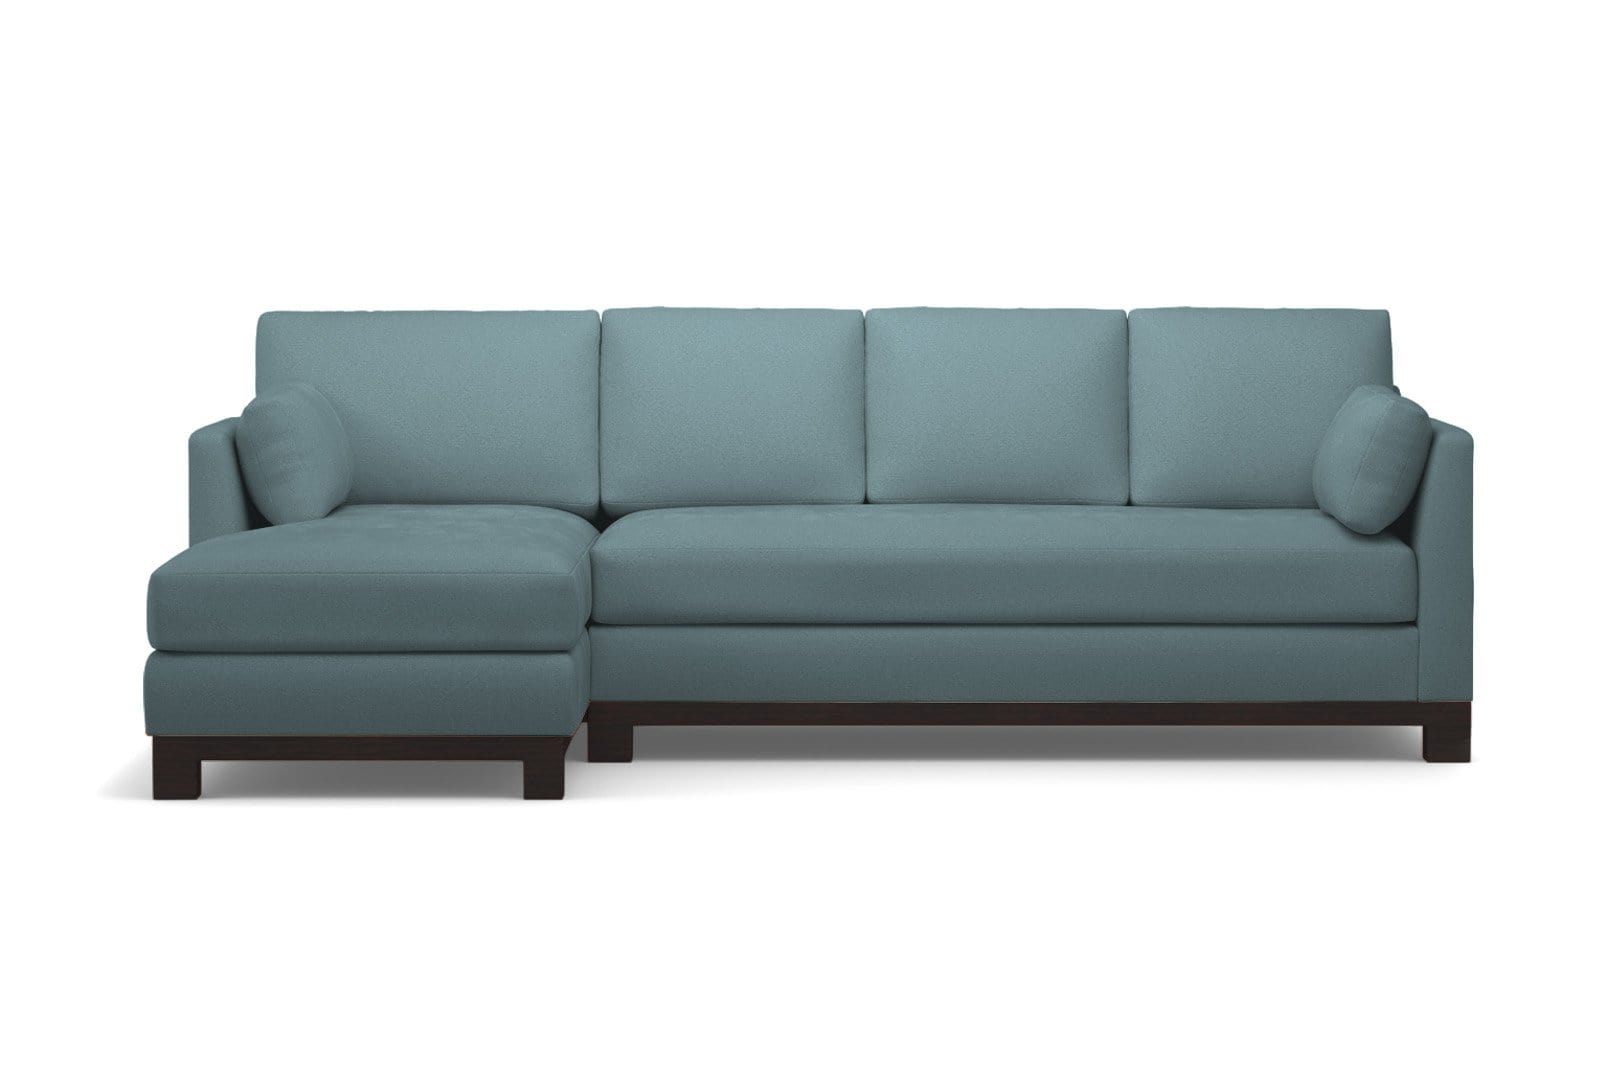 Avalon 2pc Sleeper Sectional - Blue Velvet - Pull Out Couch Bed Made in the USA - Sold by Apt2B